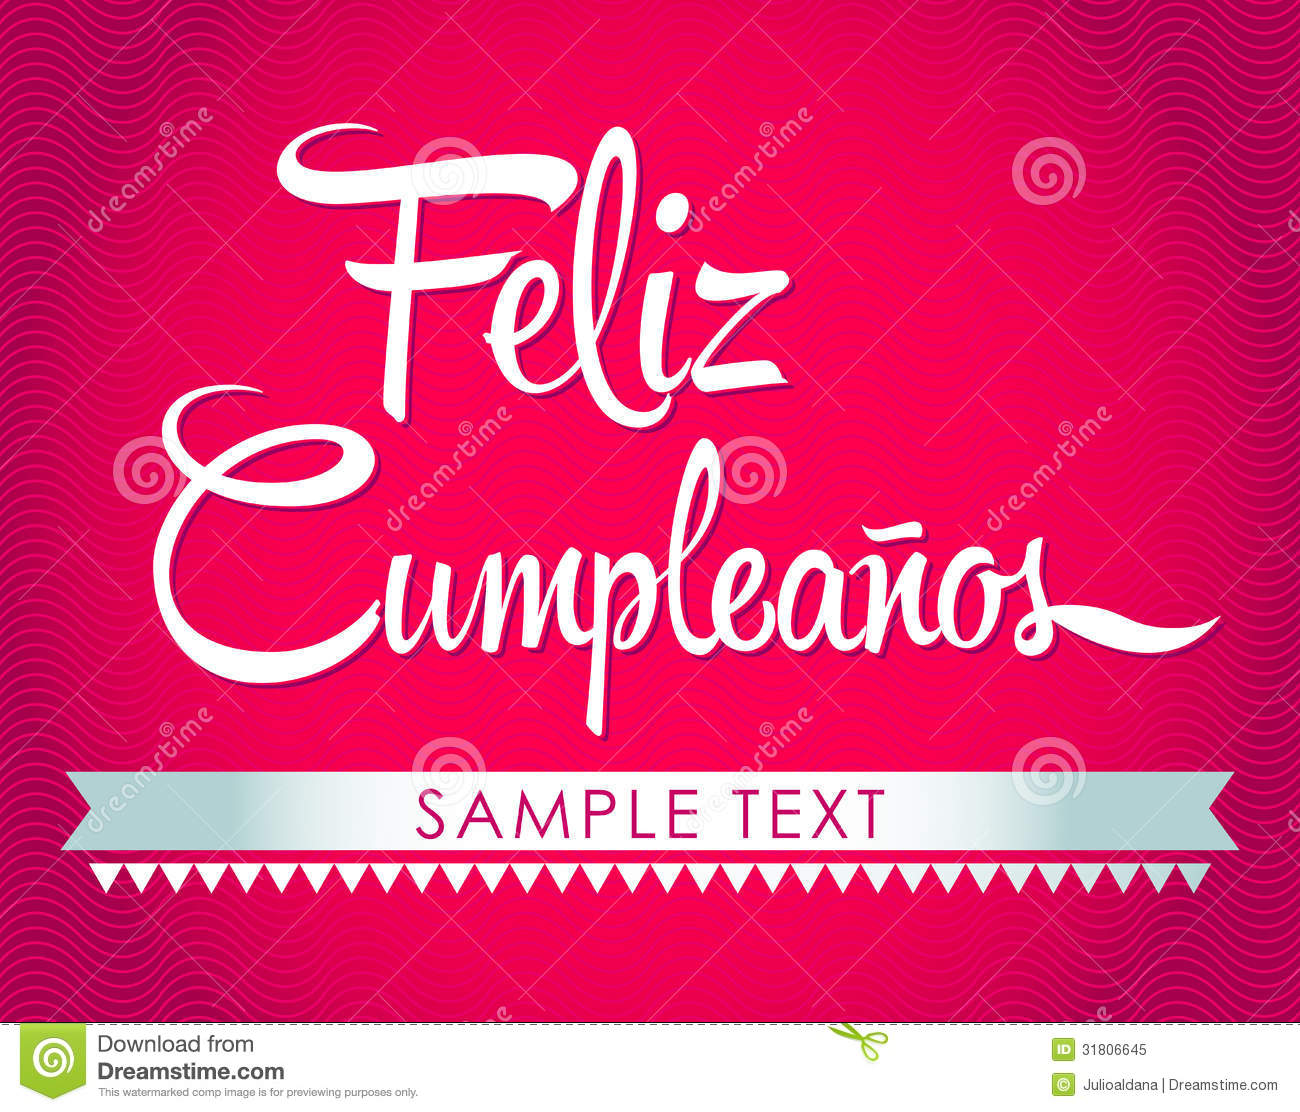 feliz cumpleanos  happy birthday spanish text royalty free stock, Birthday card